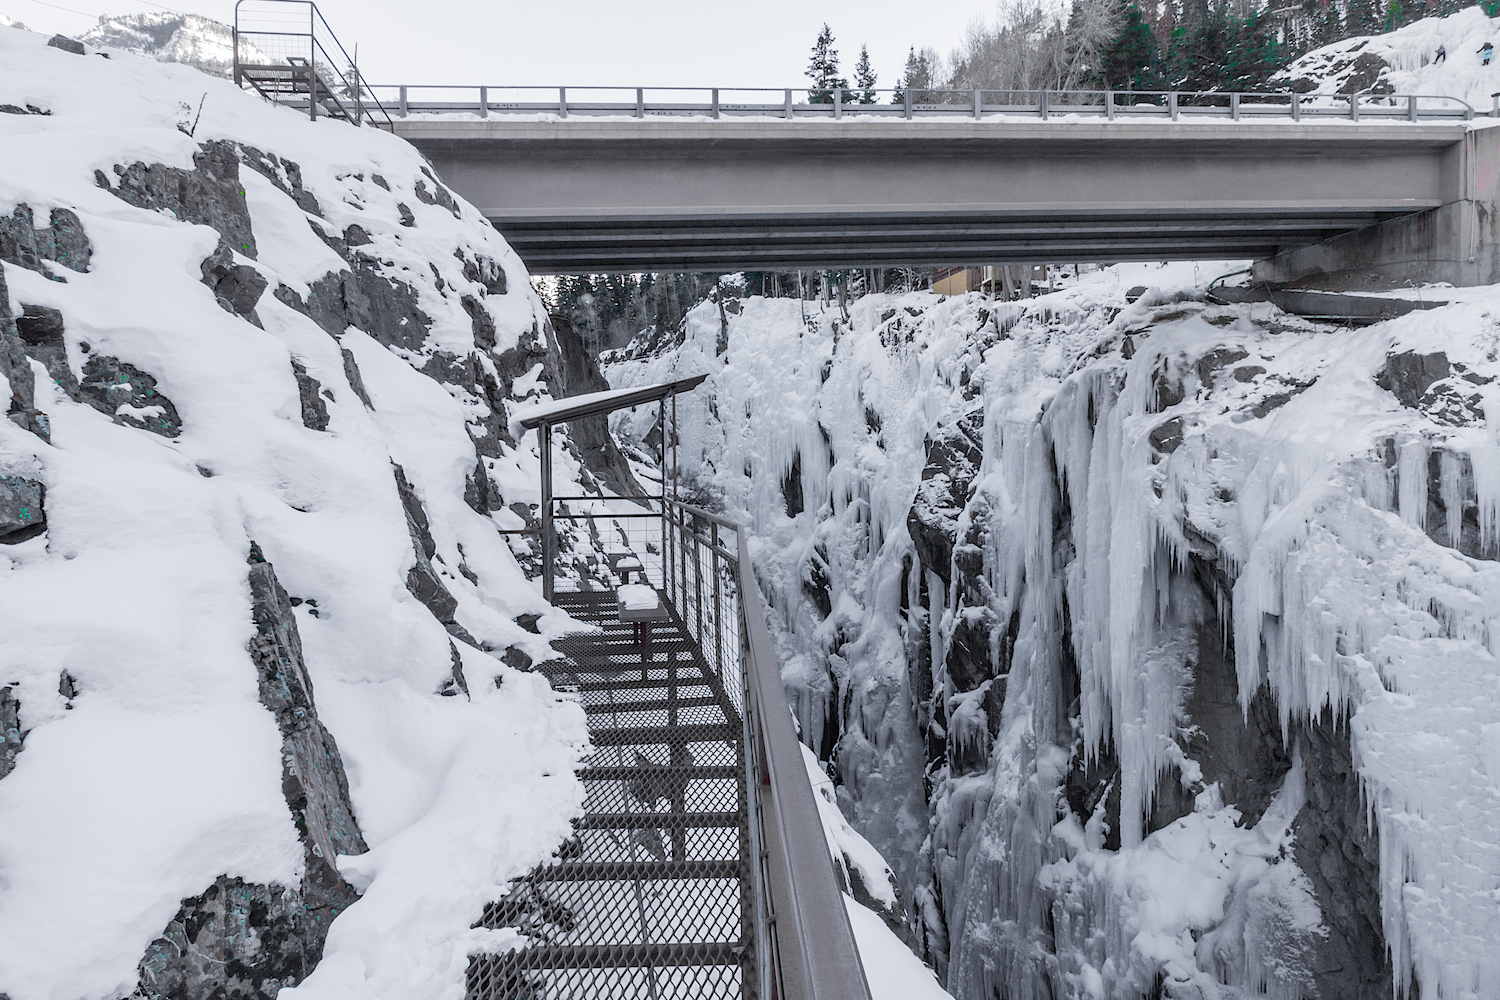 Ouray Ice Park, Image # 4482